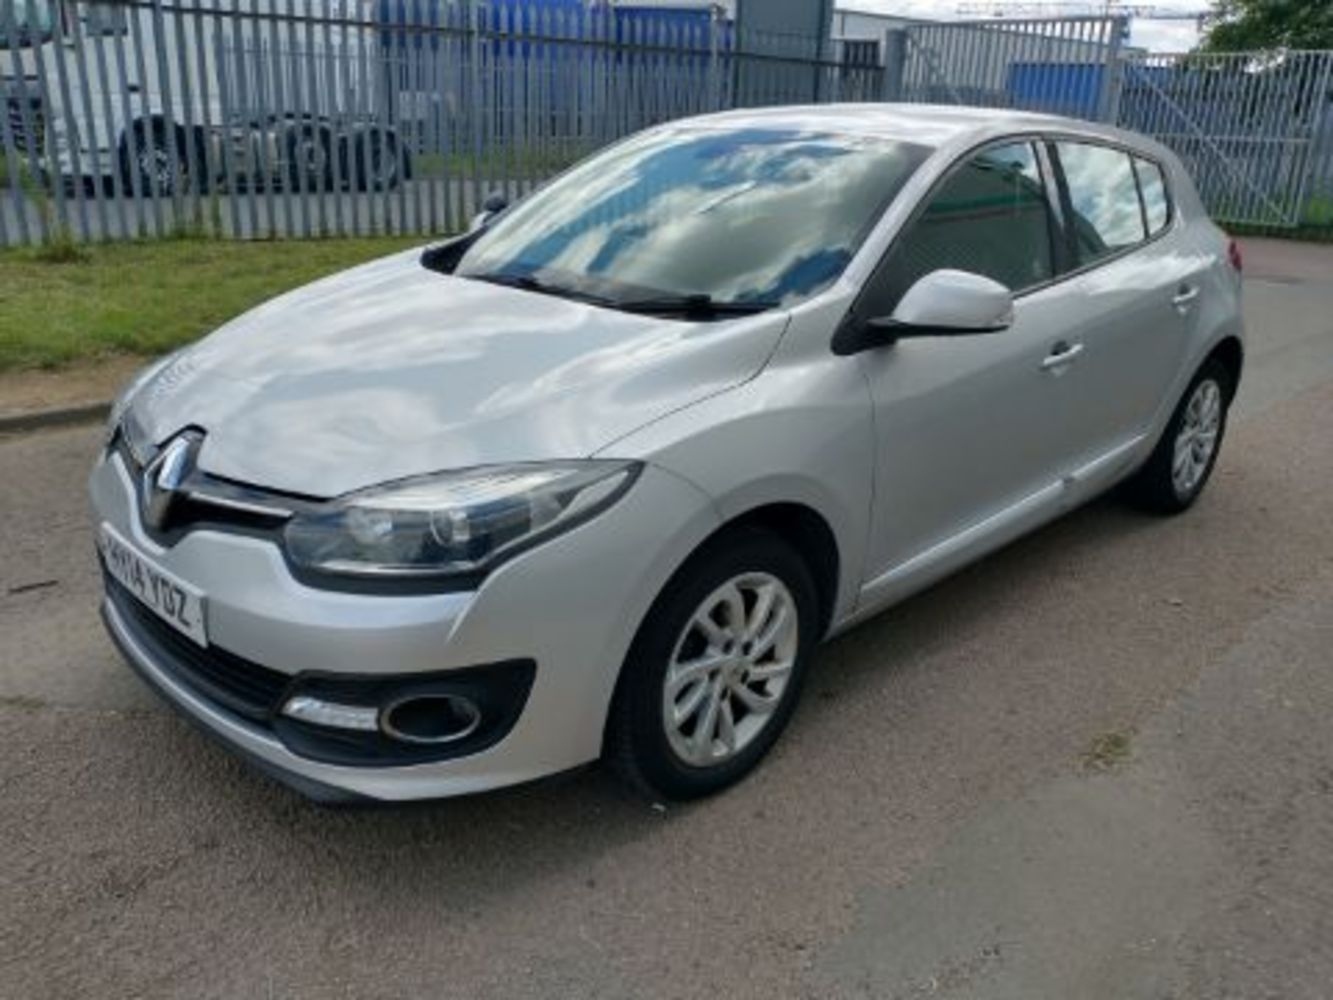 Monday 2nd August - Car & Van Vehicle Auction - Lots Ending from 2pm